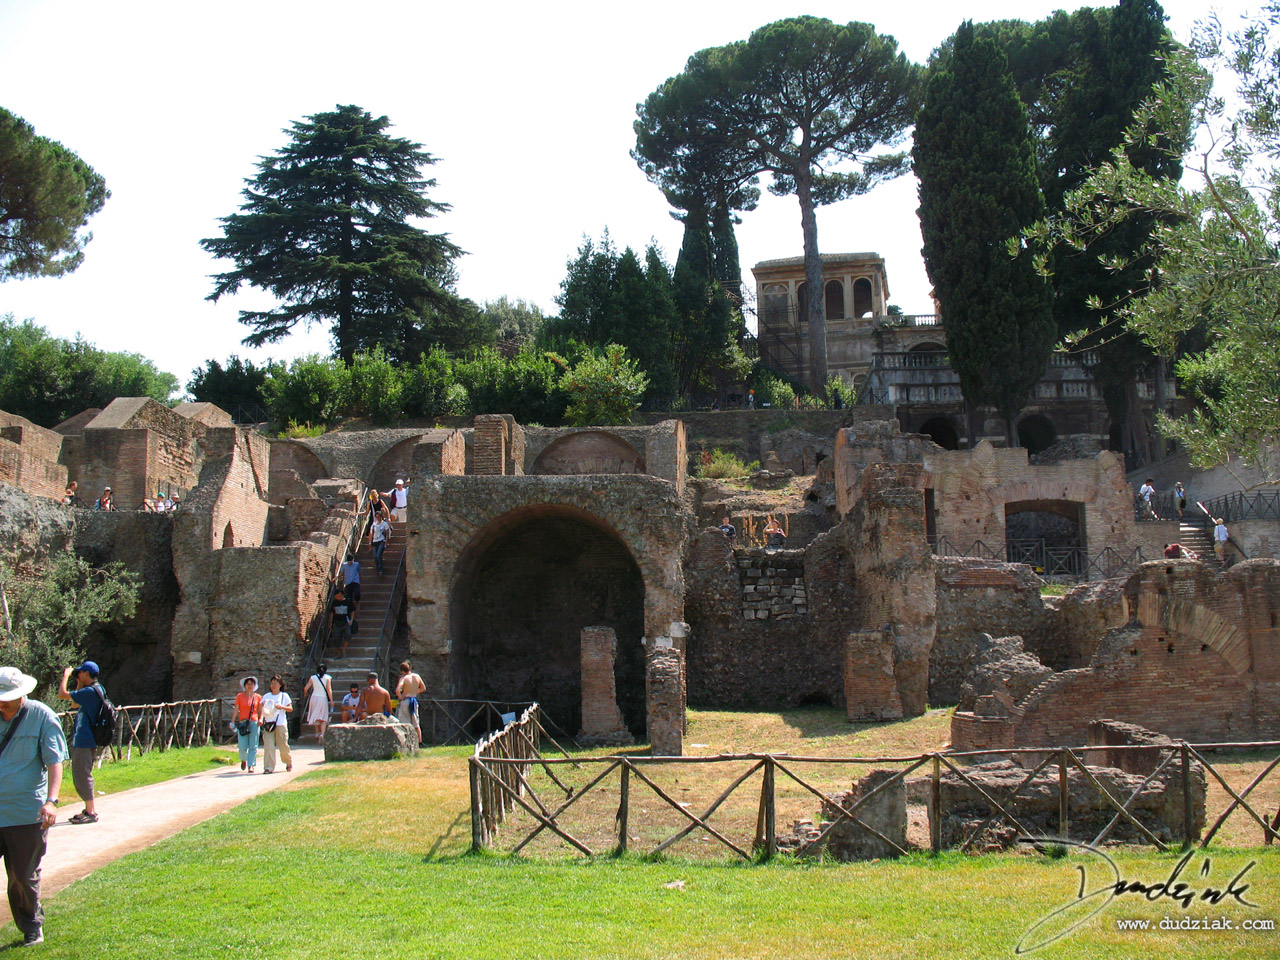 Picture of some ruins, looking toward the Palentine Hill while standing in the Roman Forum in Rome, Italy.